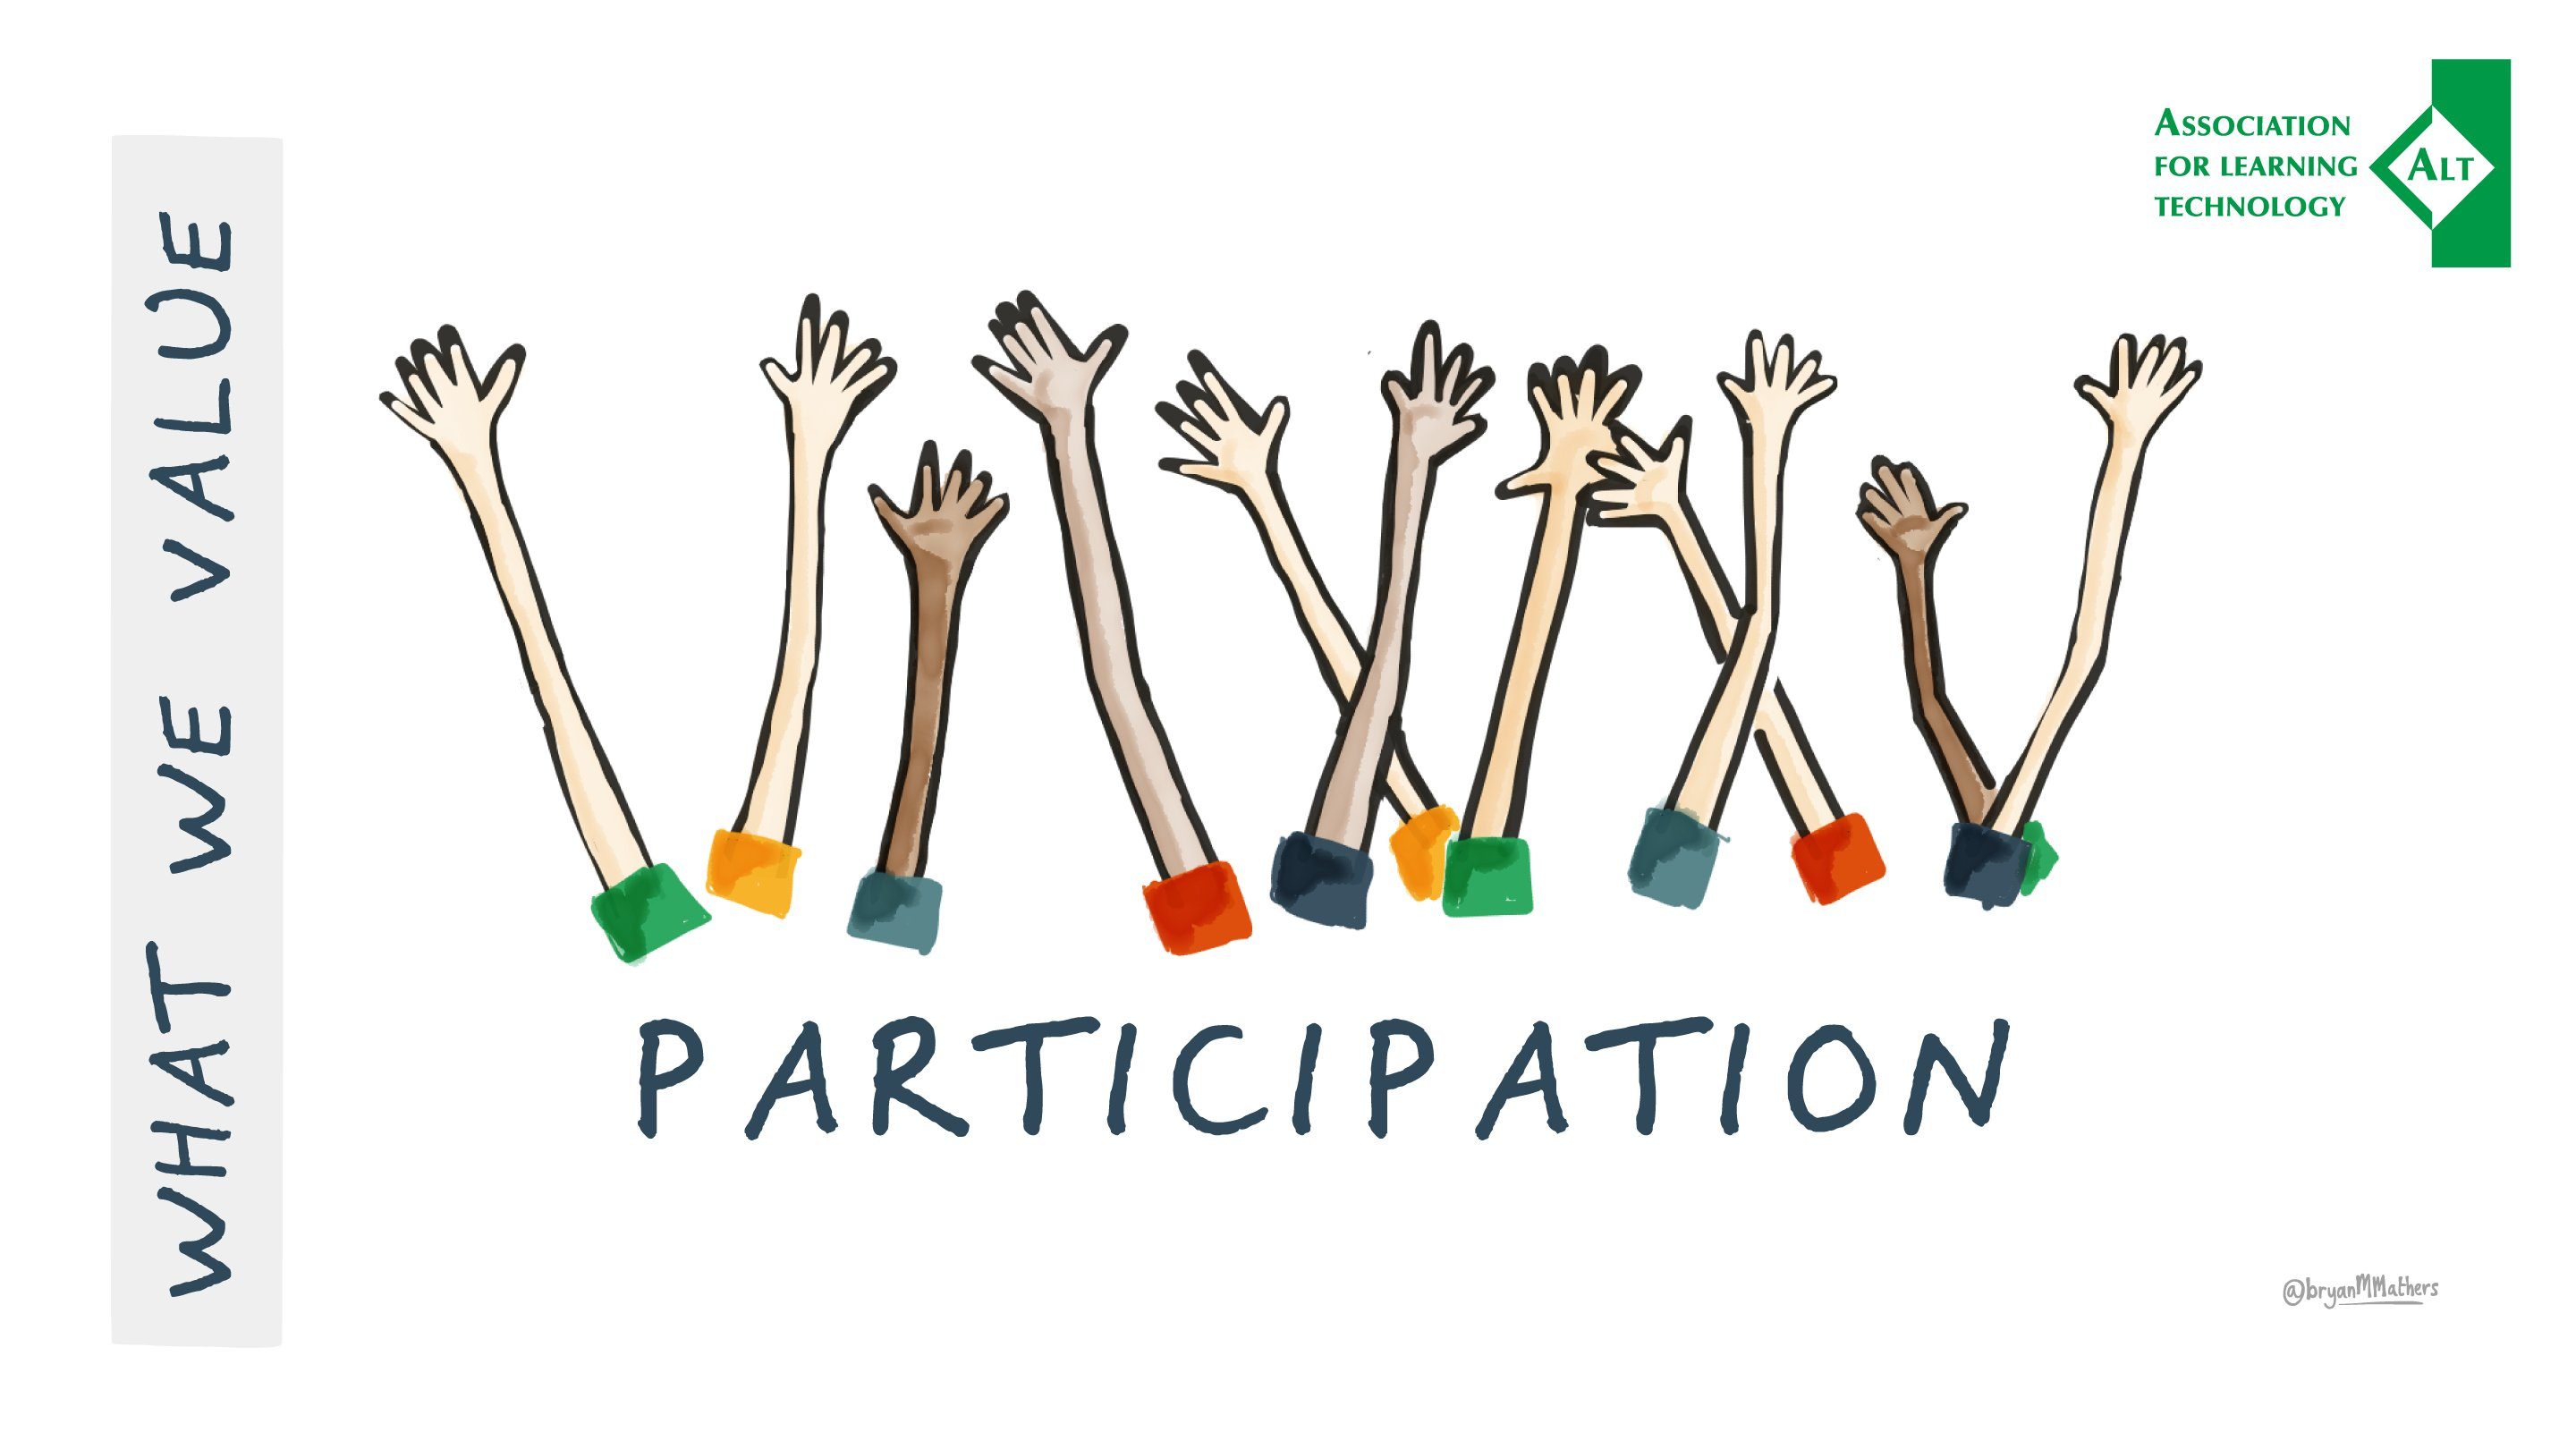 Hands held high in the air to portray participation